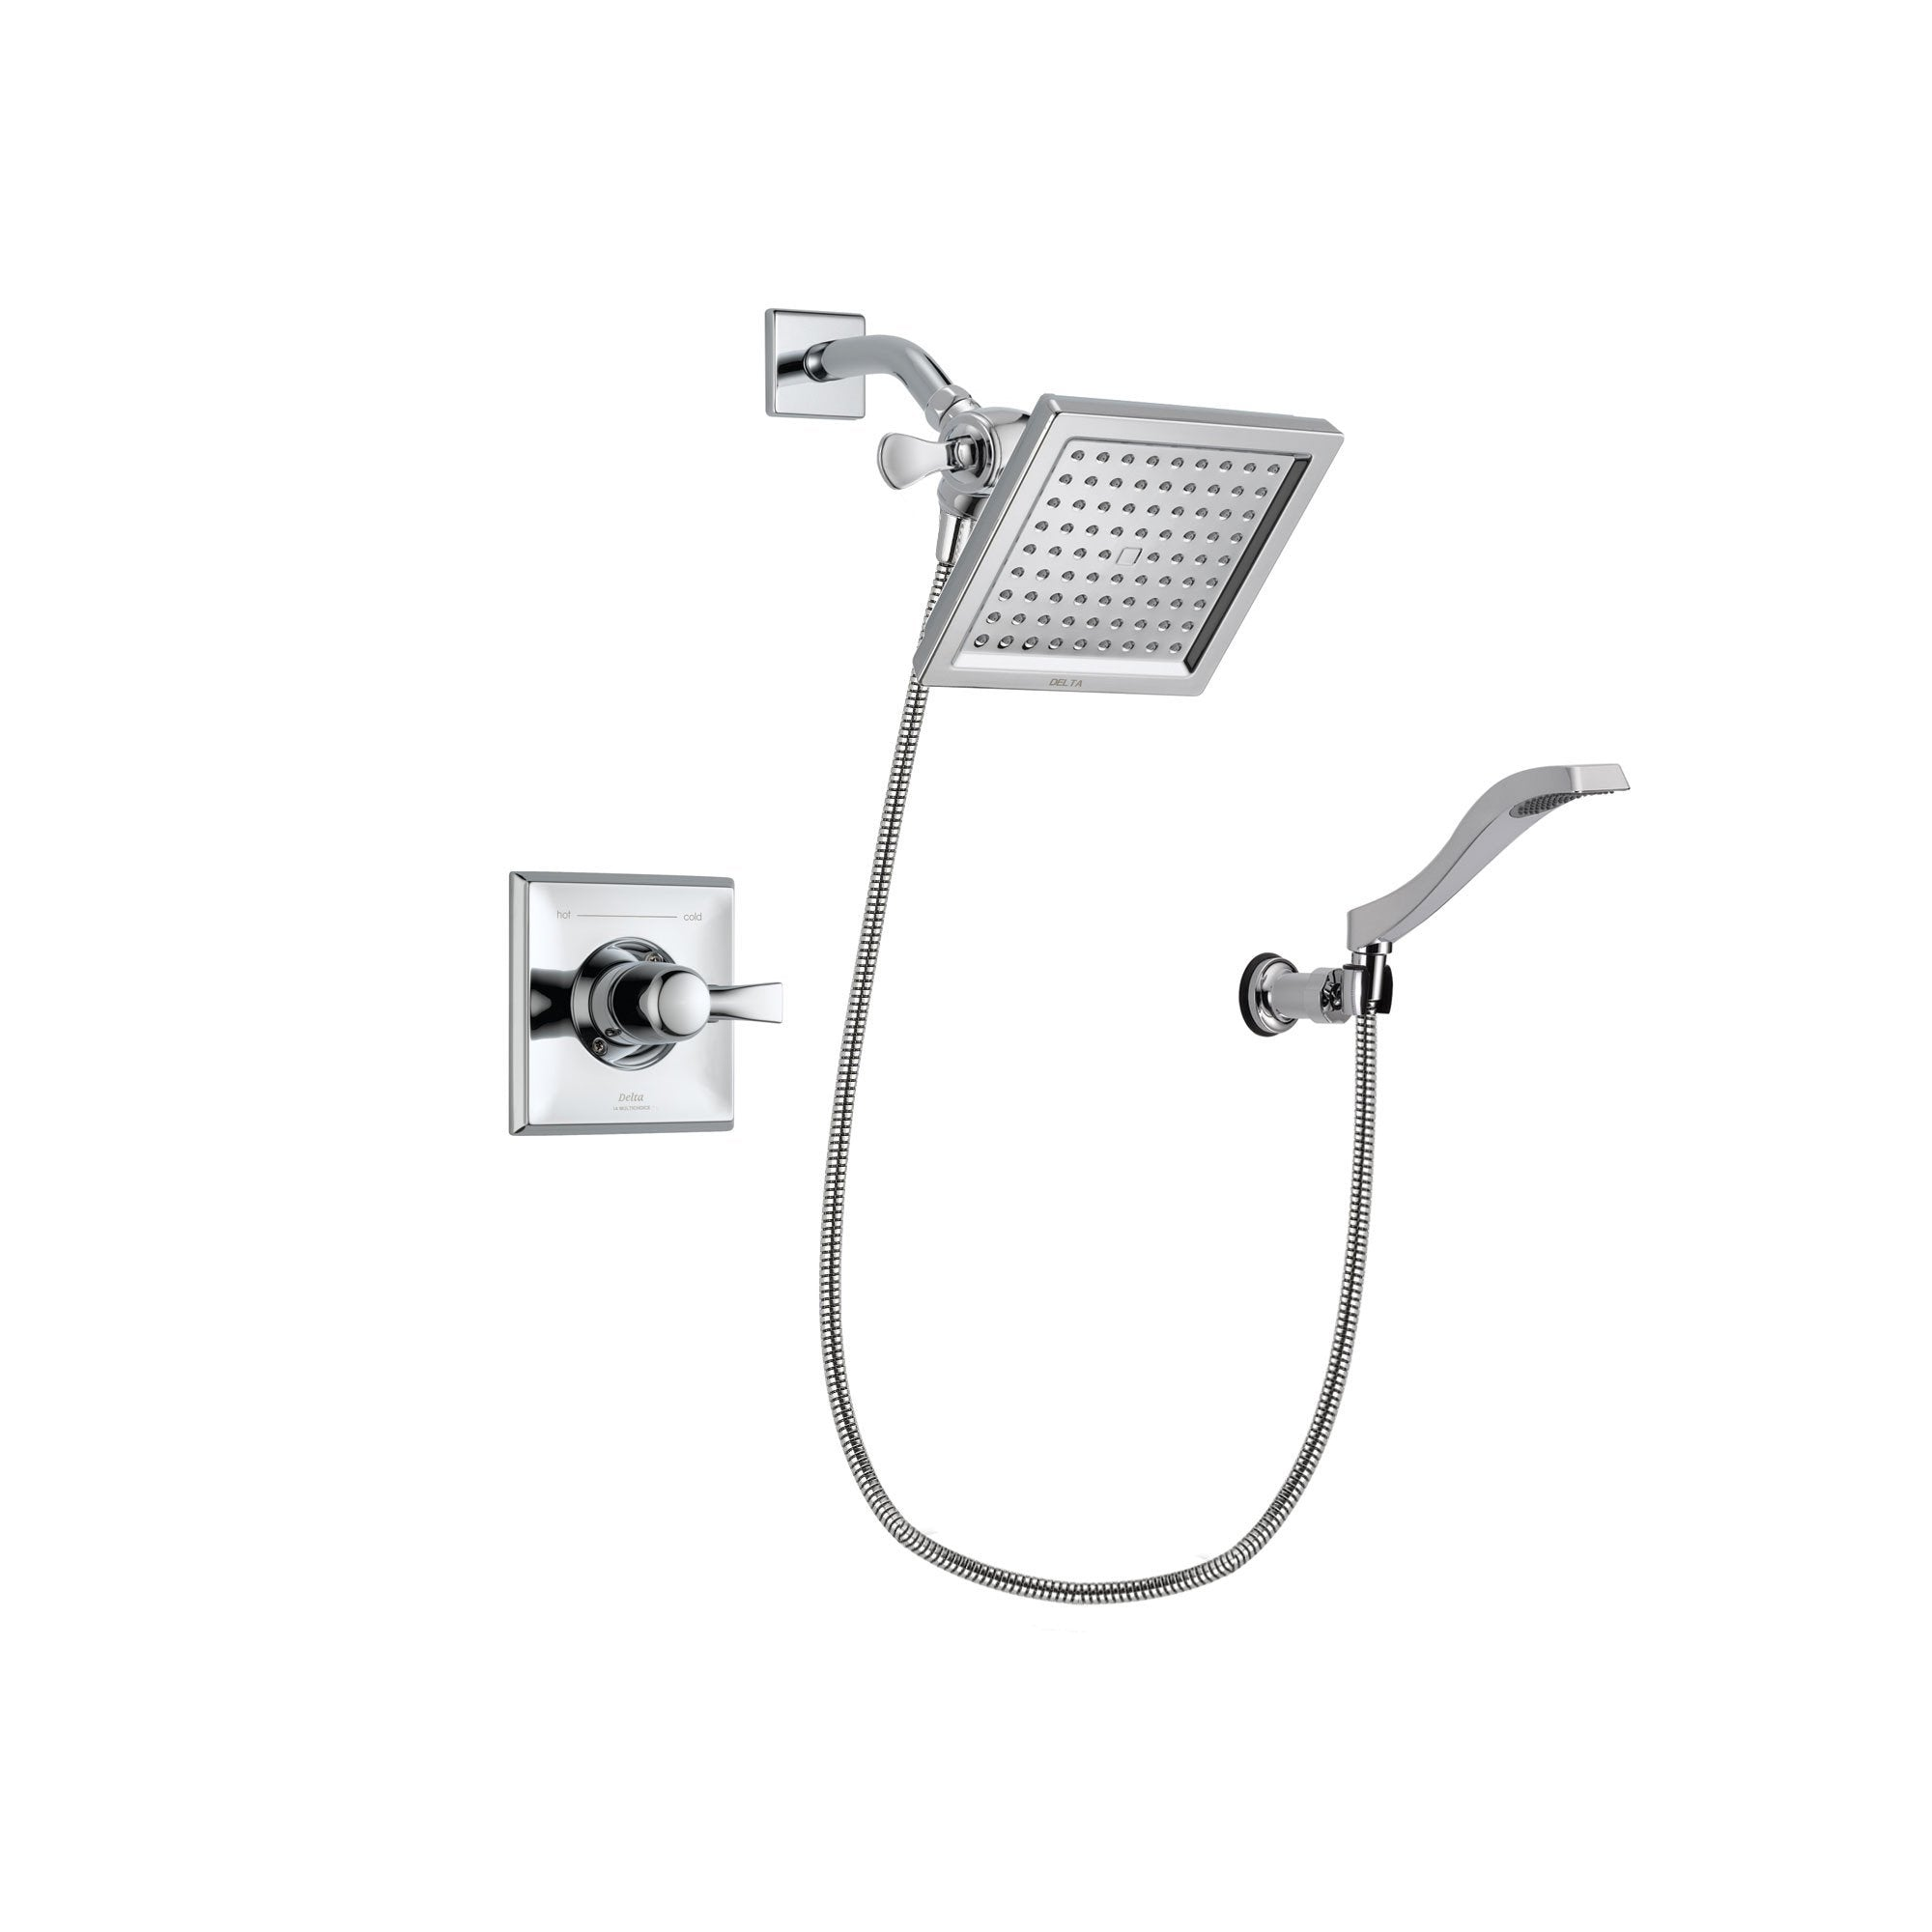 Delta Dryden Chrome Shower Faucet System with Shower Head & Hand Shower DSP0024V